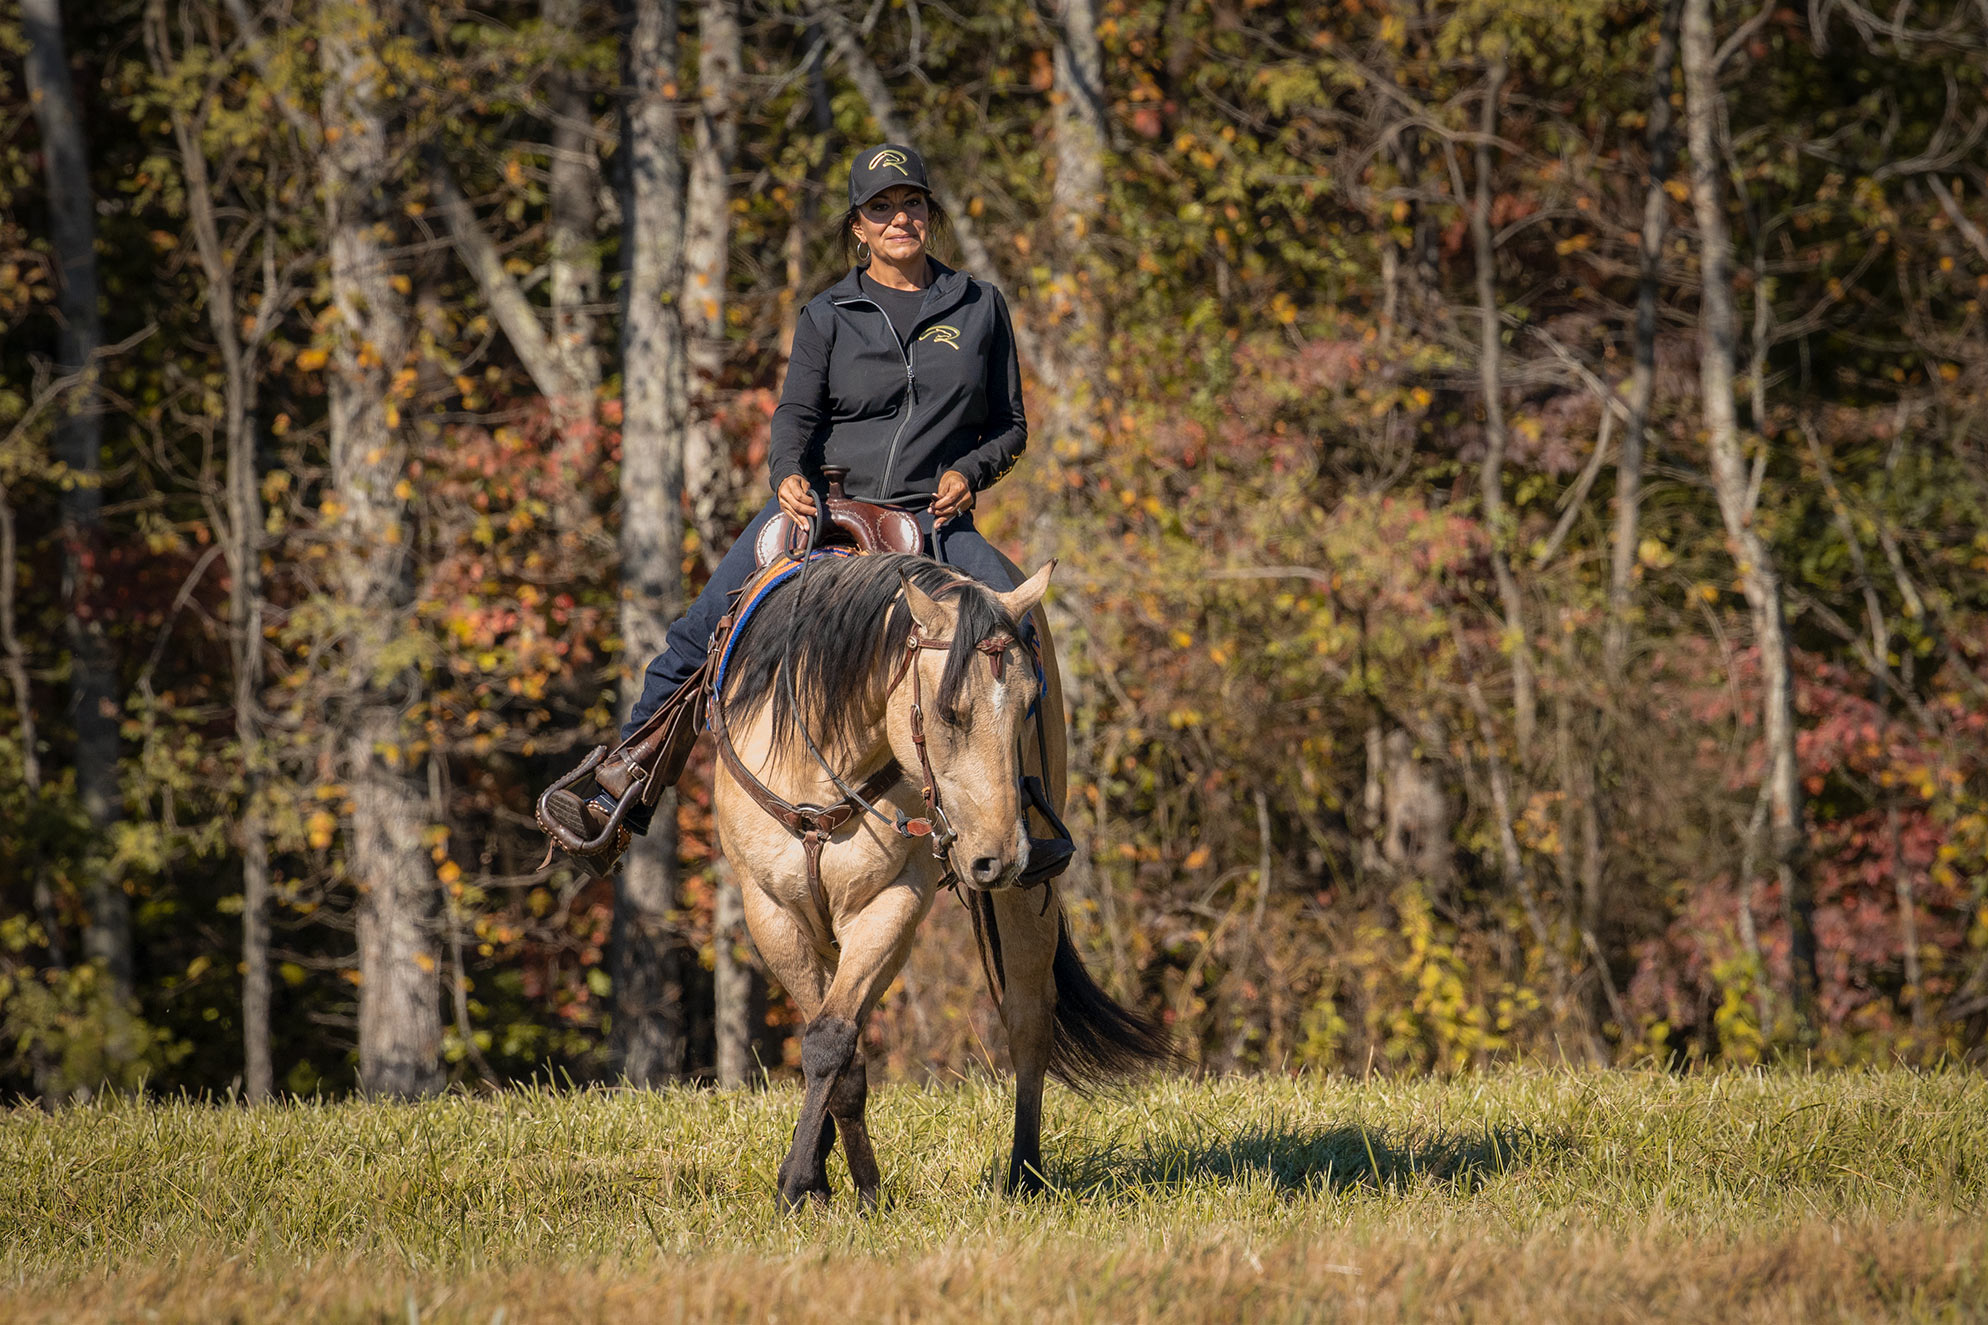 019-Dodge-Luxury-Trail-Horse-For-Sale